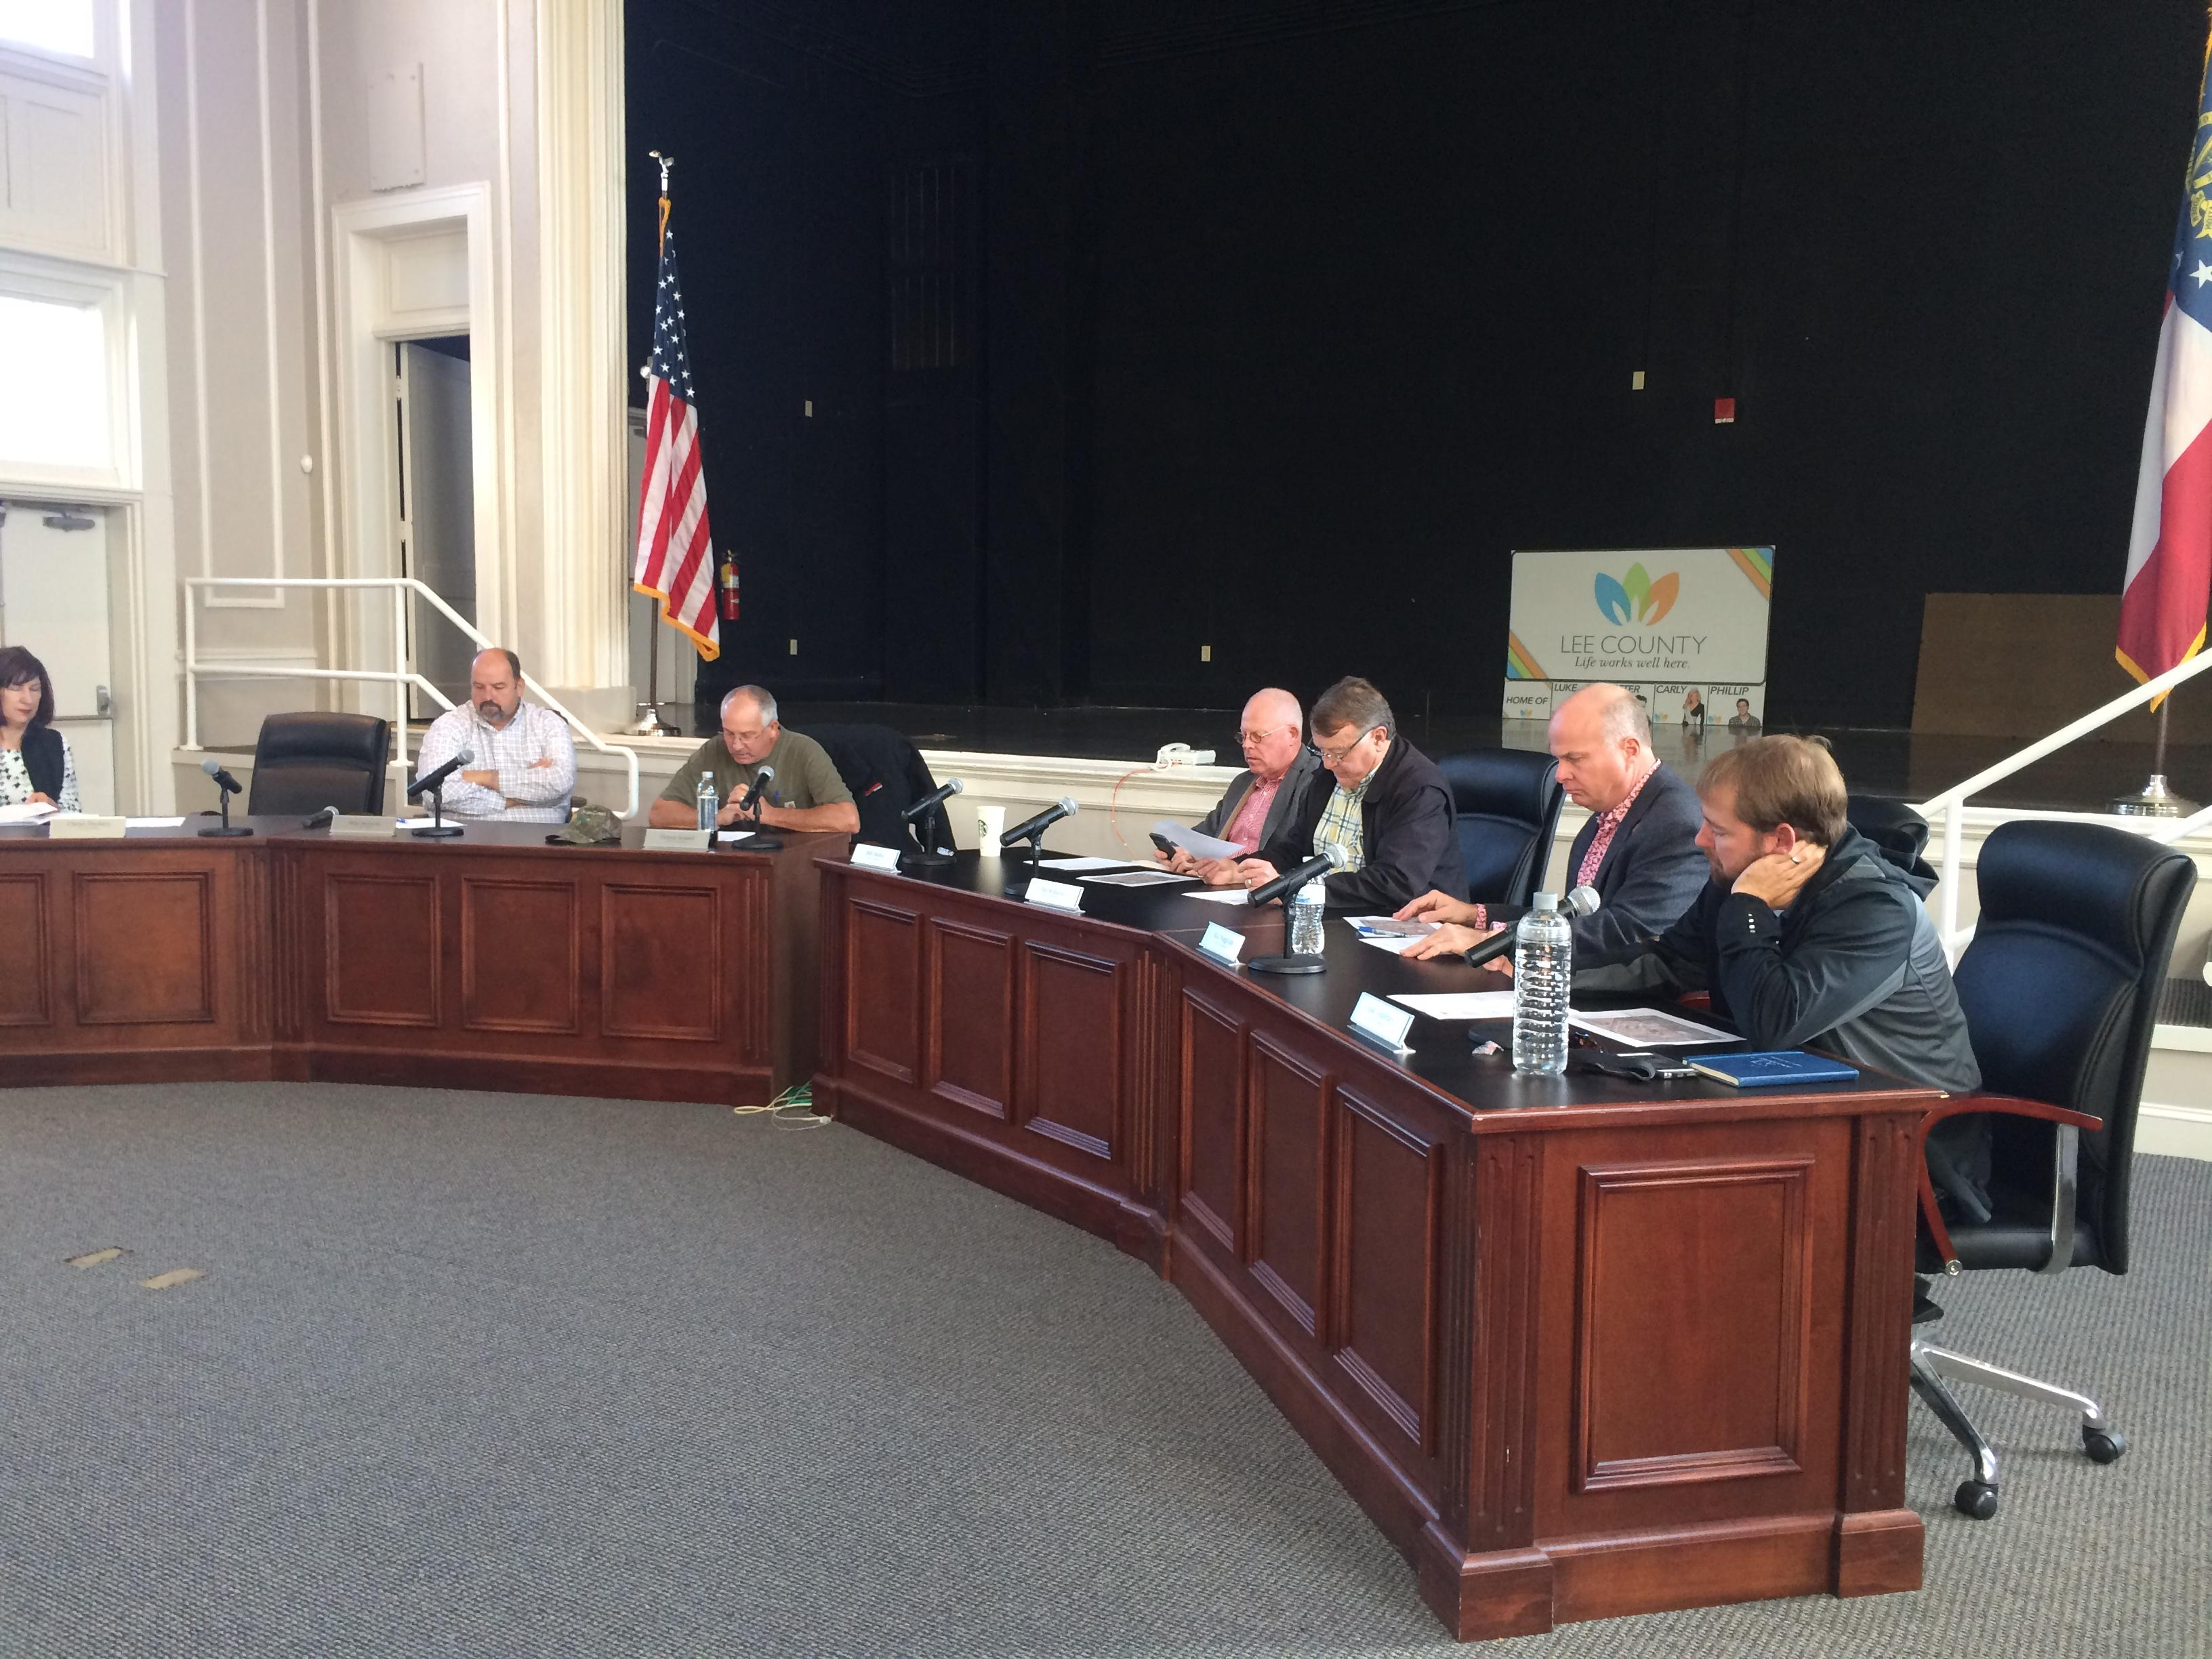 Lee County Commissioners met for a special called meeting to discuss the Lee County Medical Center and plans to move forward.<p></p><p>Photo: Kailey McCarthy</p>